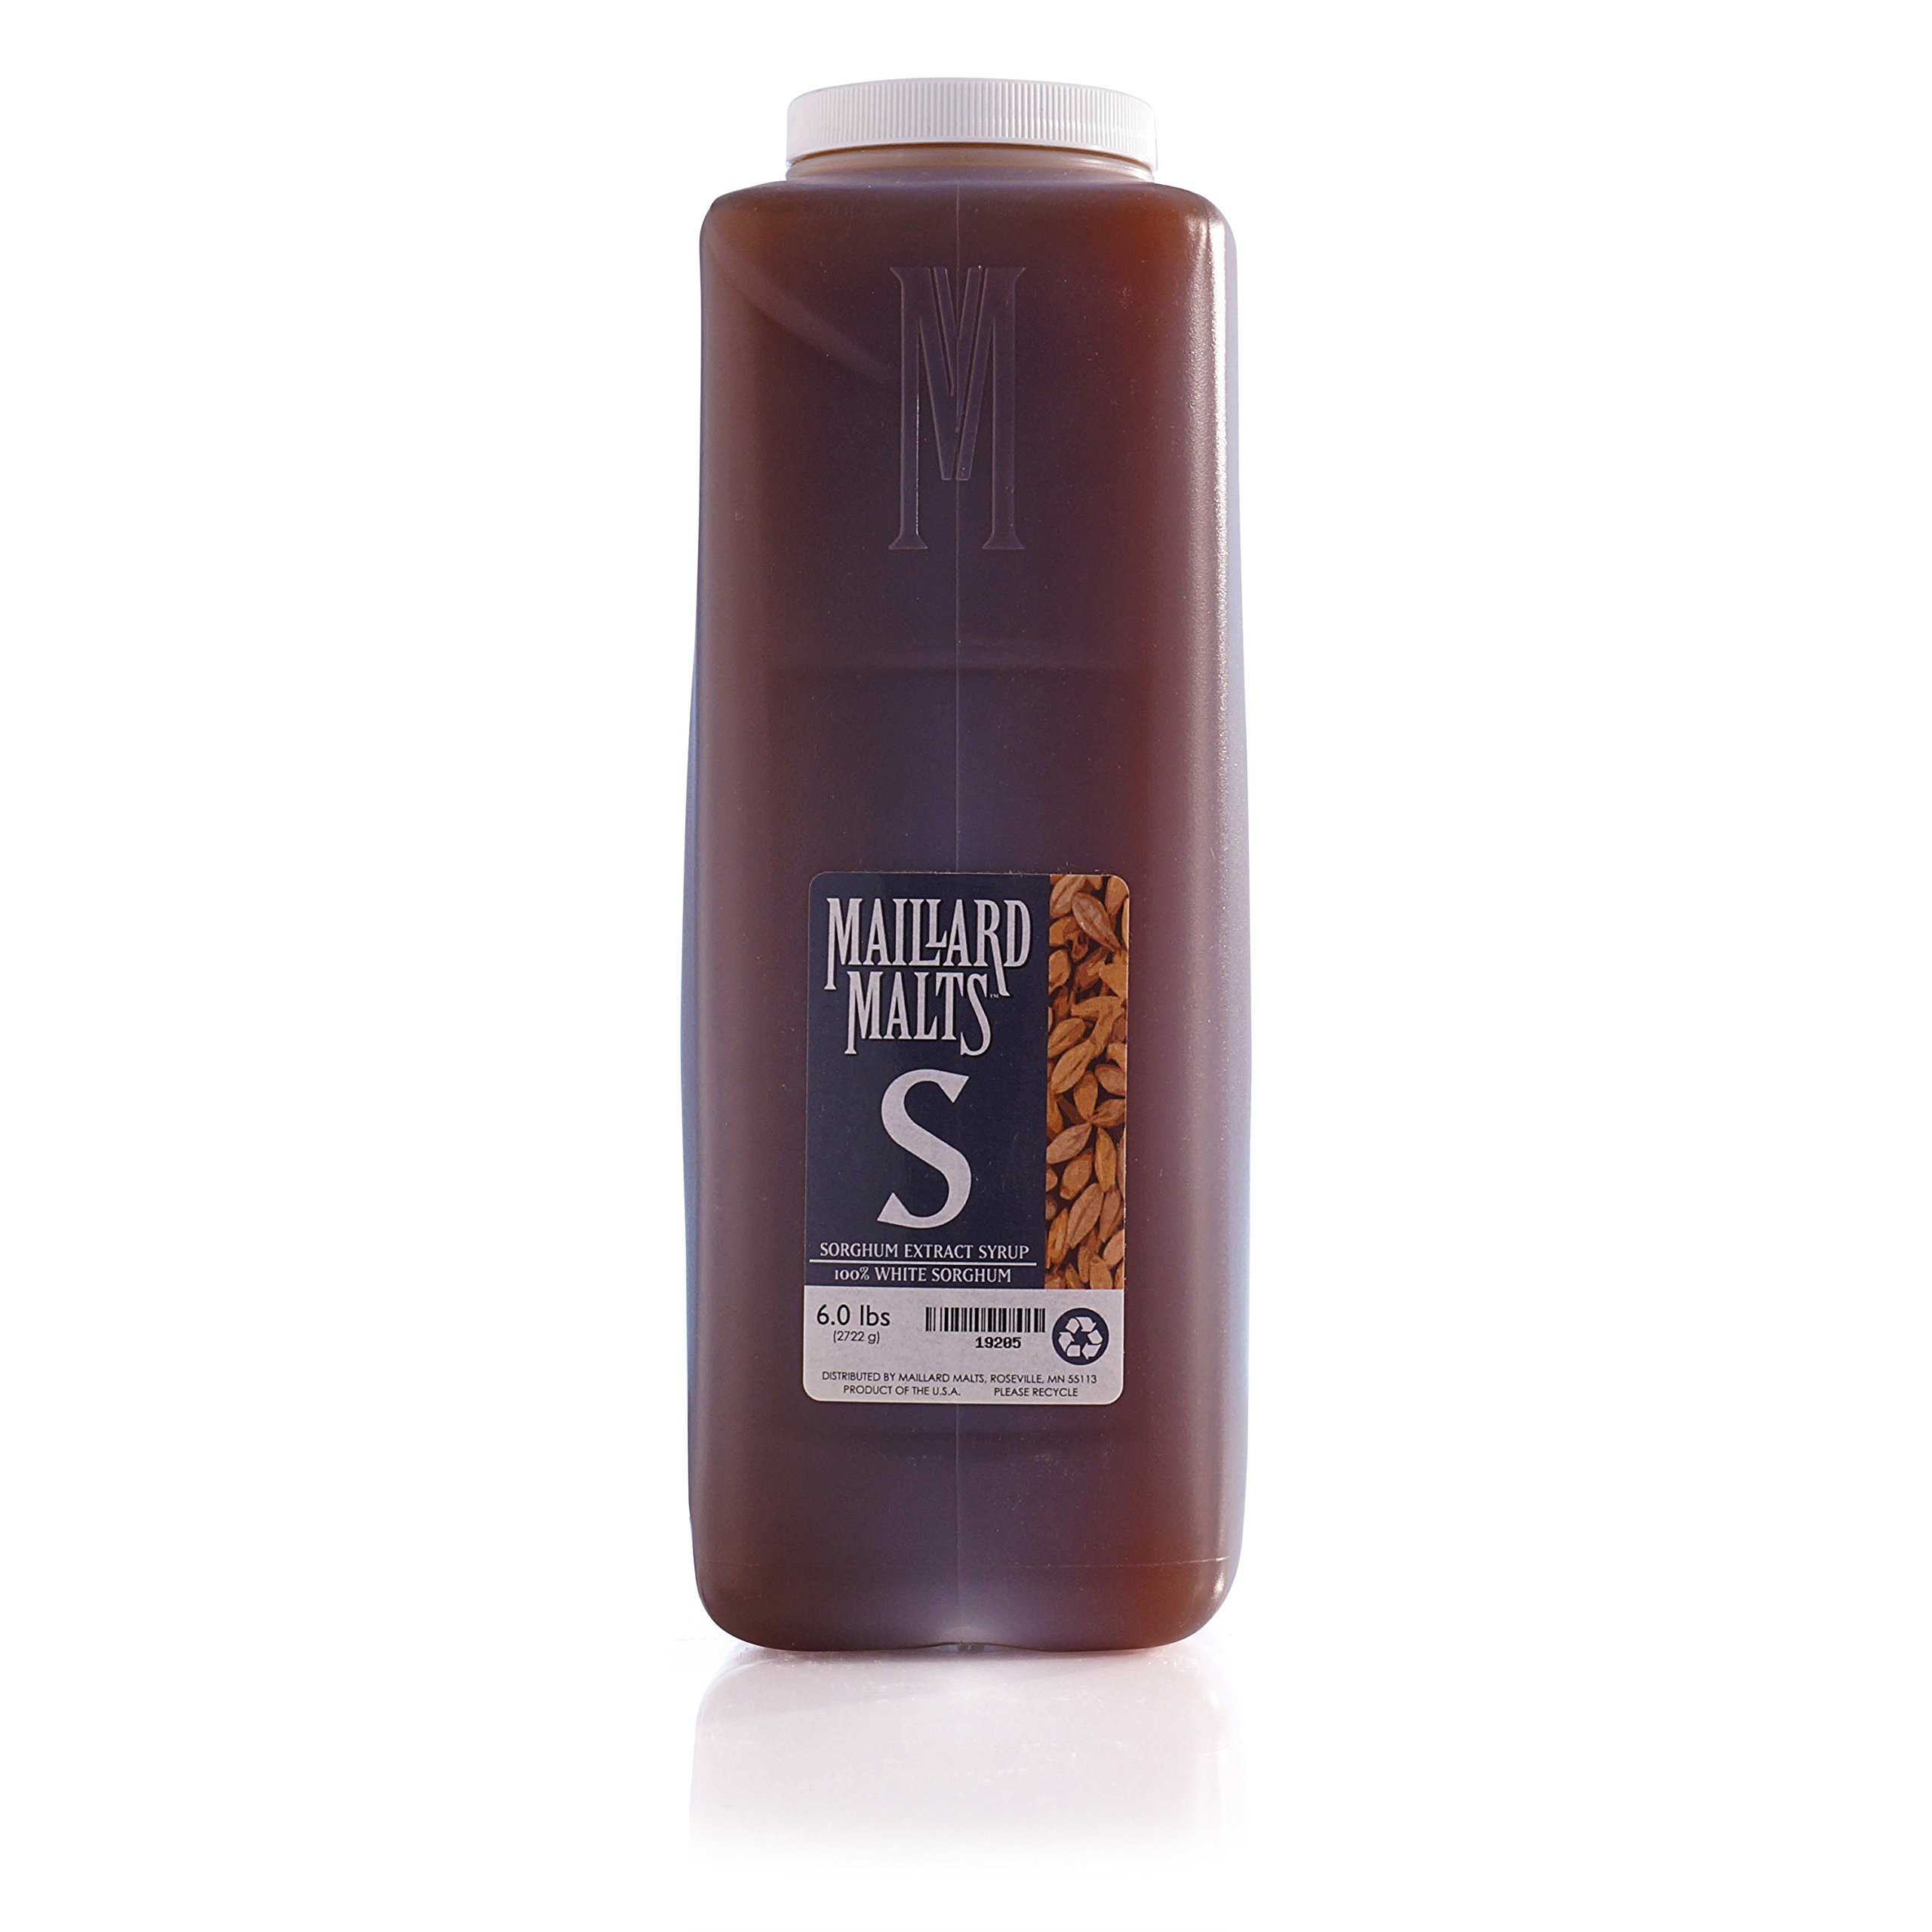 Northern Brewer - Malt Extract Syrup For Beer Brewing - Six Pack, 6 Lbs Each, 36 Lbs Total (Sorghum) by Maillard Malts